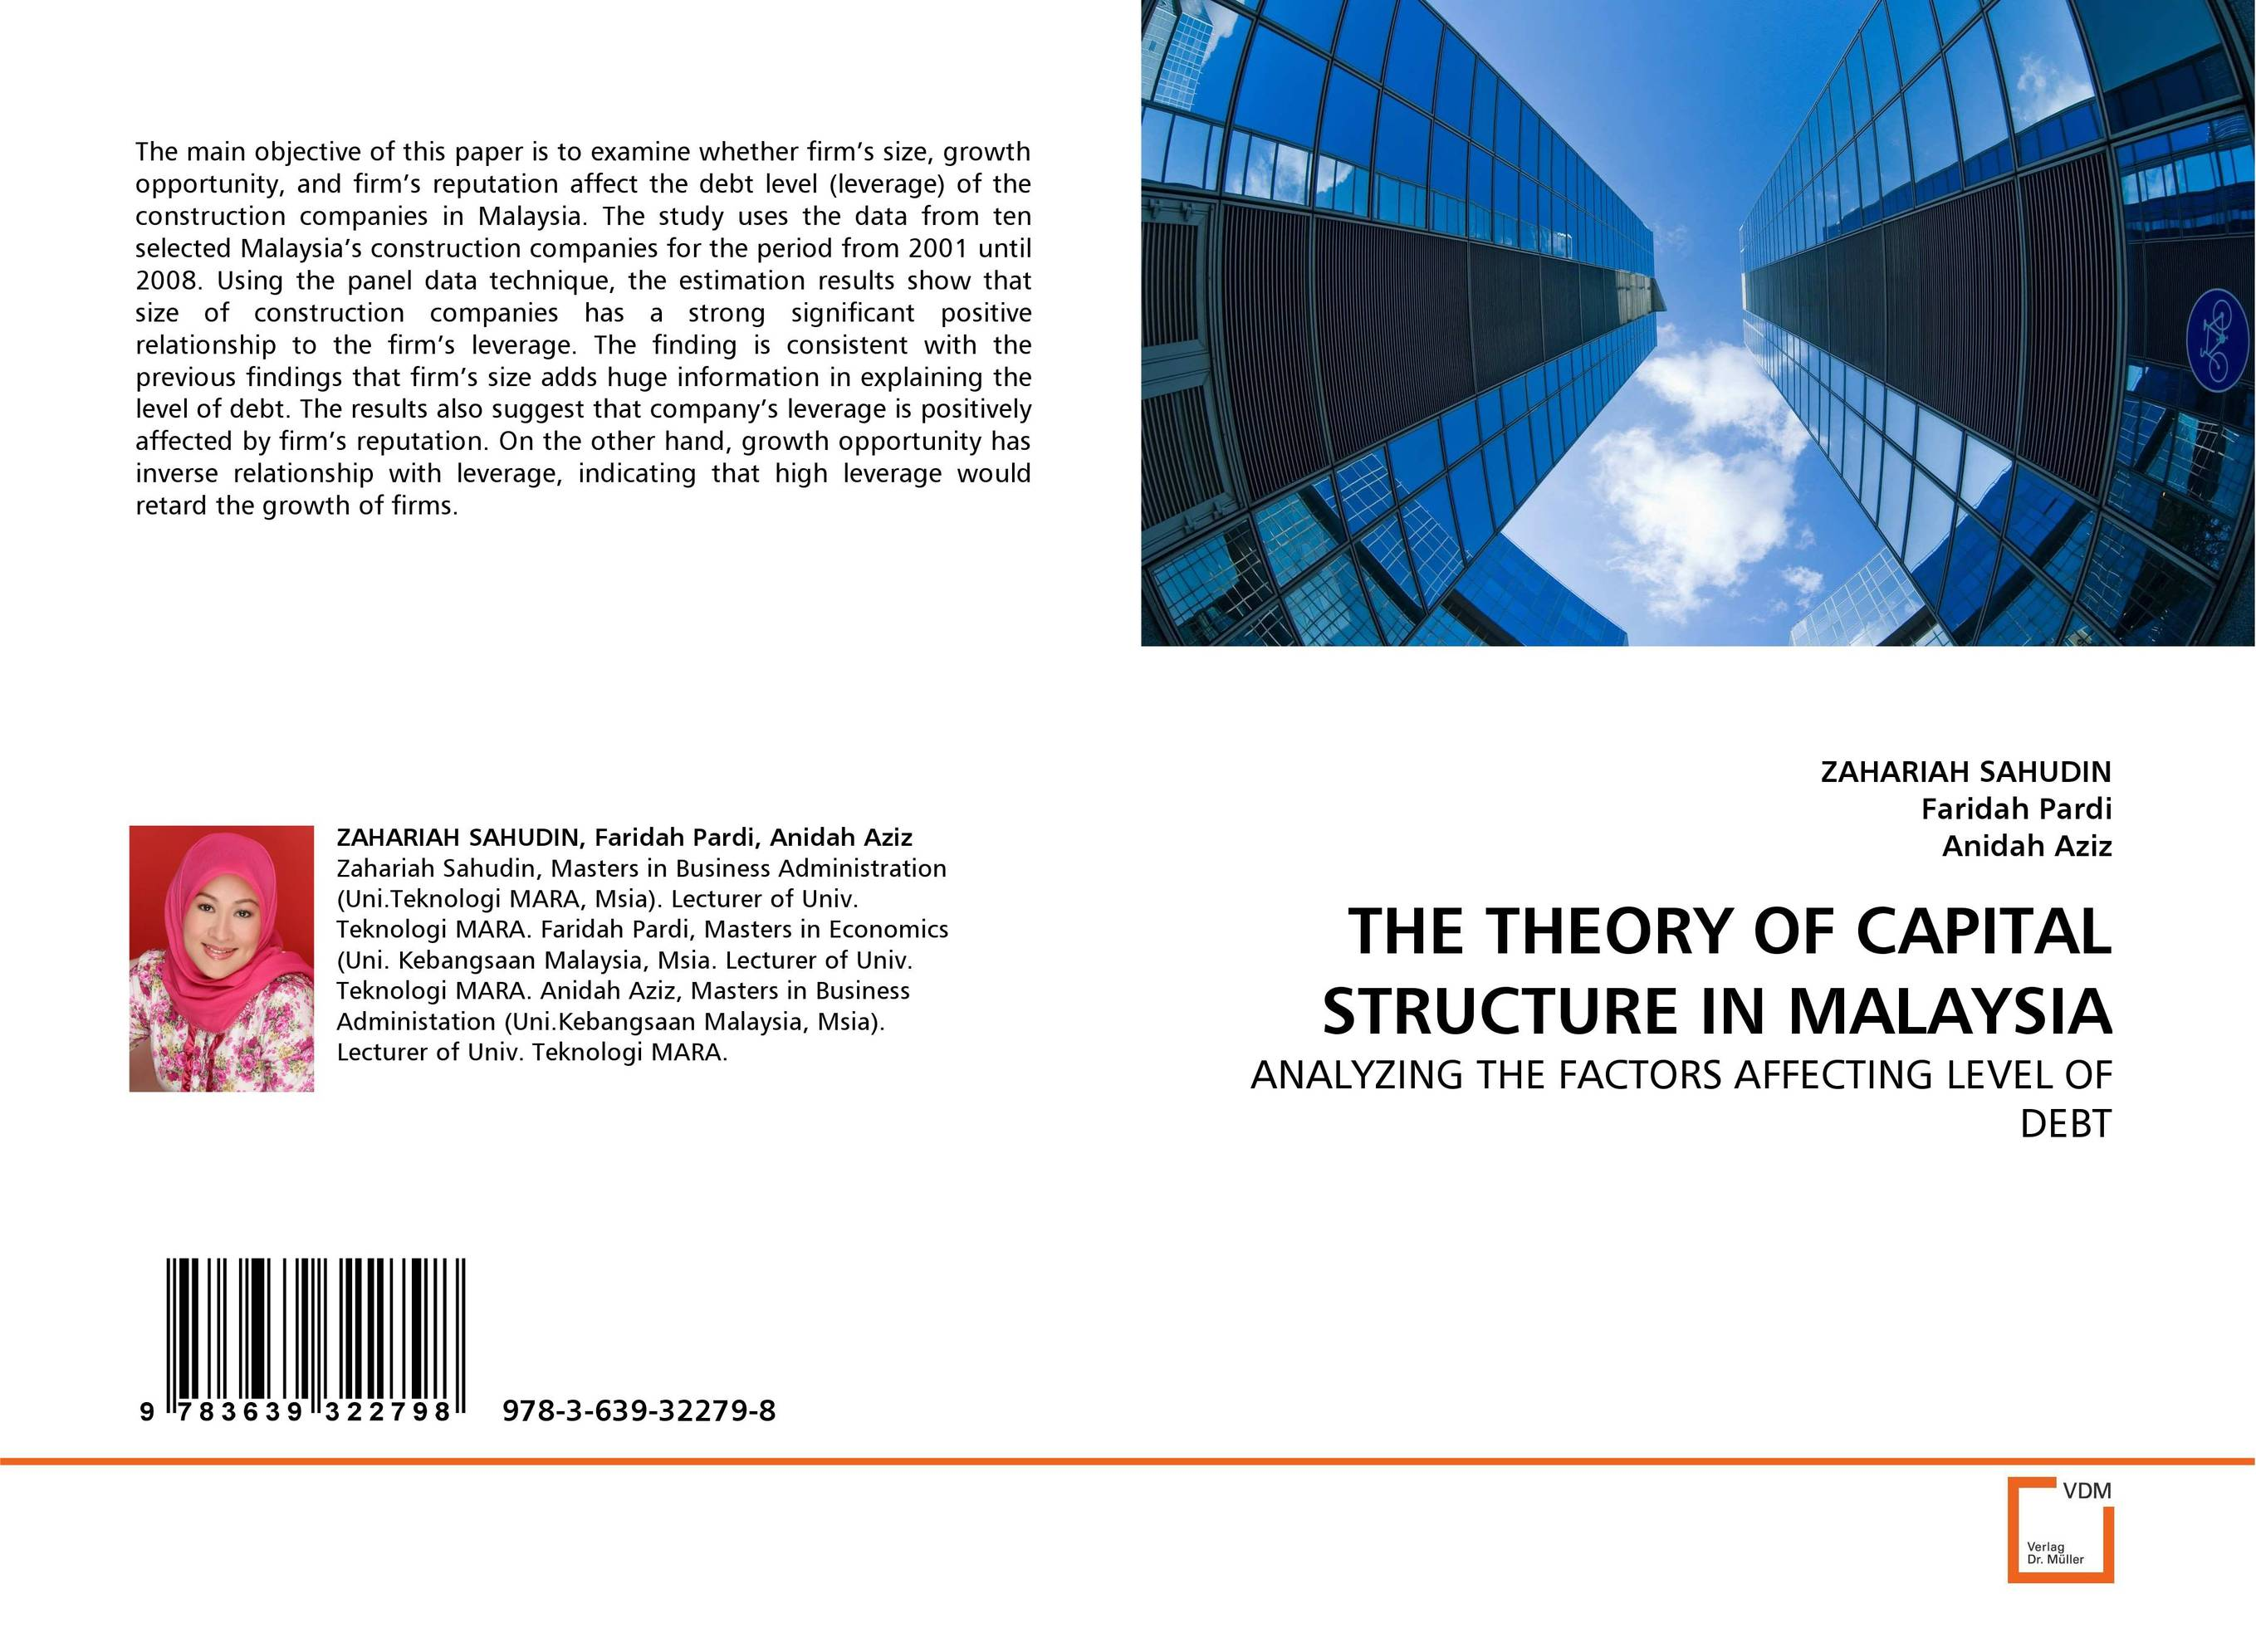 THE THEORY OF CAPITAL STRUCTURE IN MALAYSIA